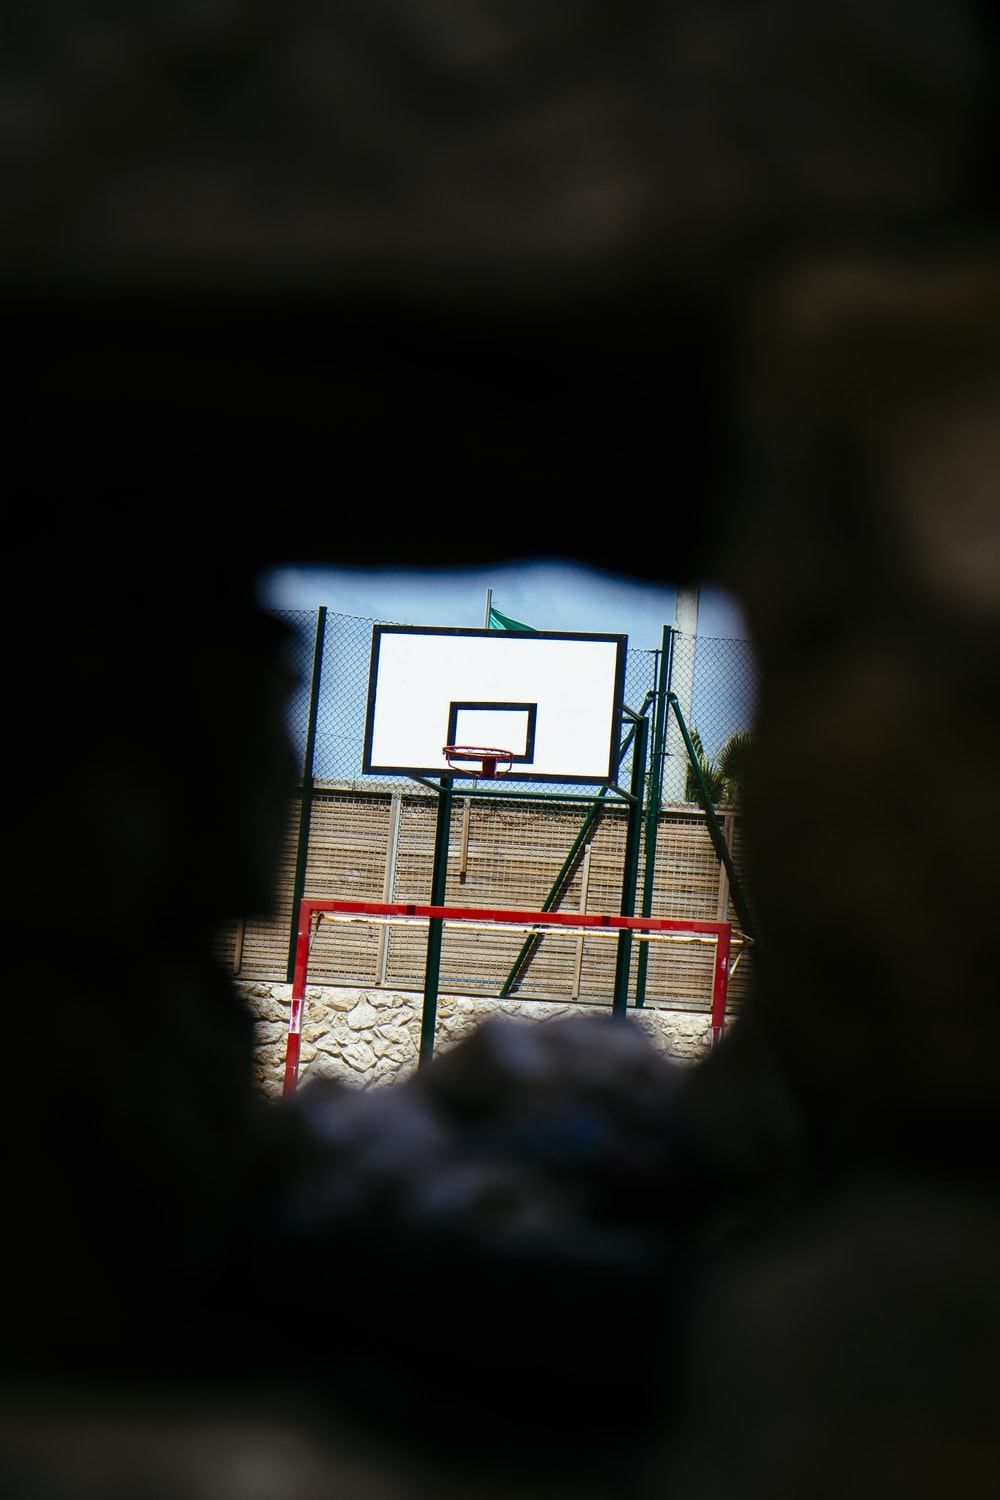 white and black basketball system